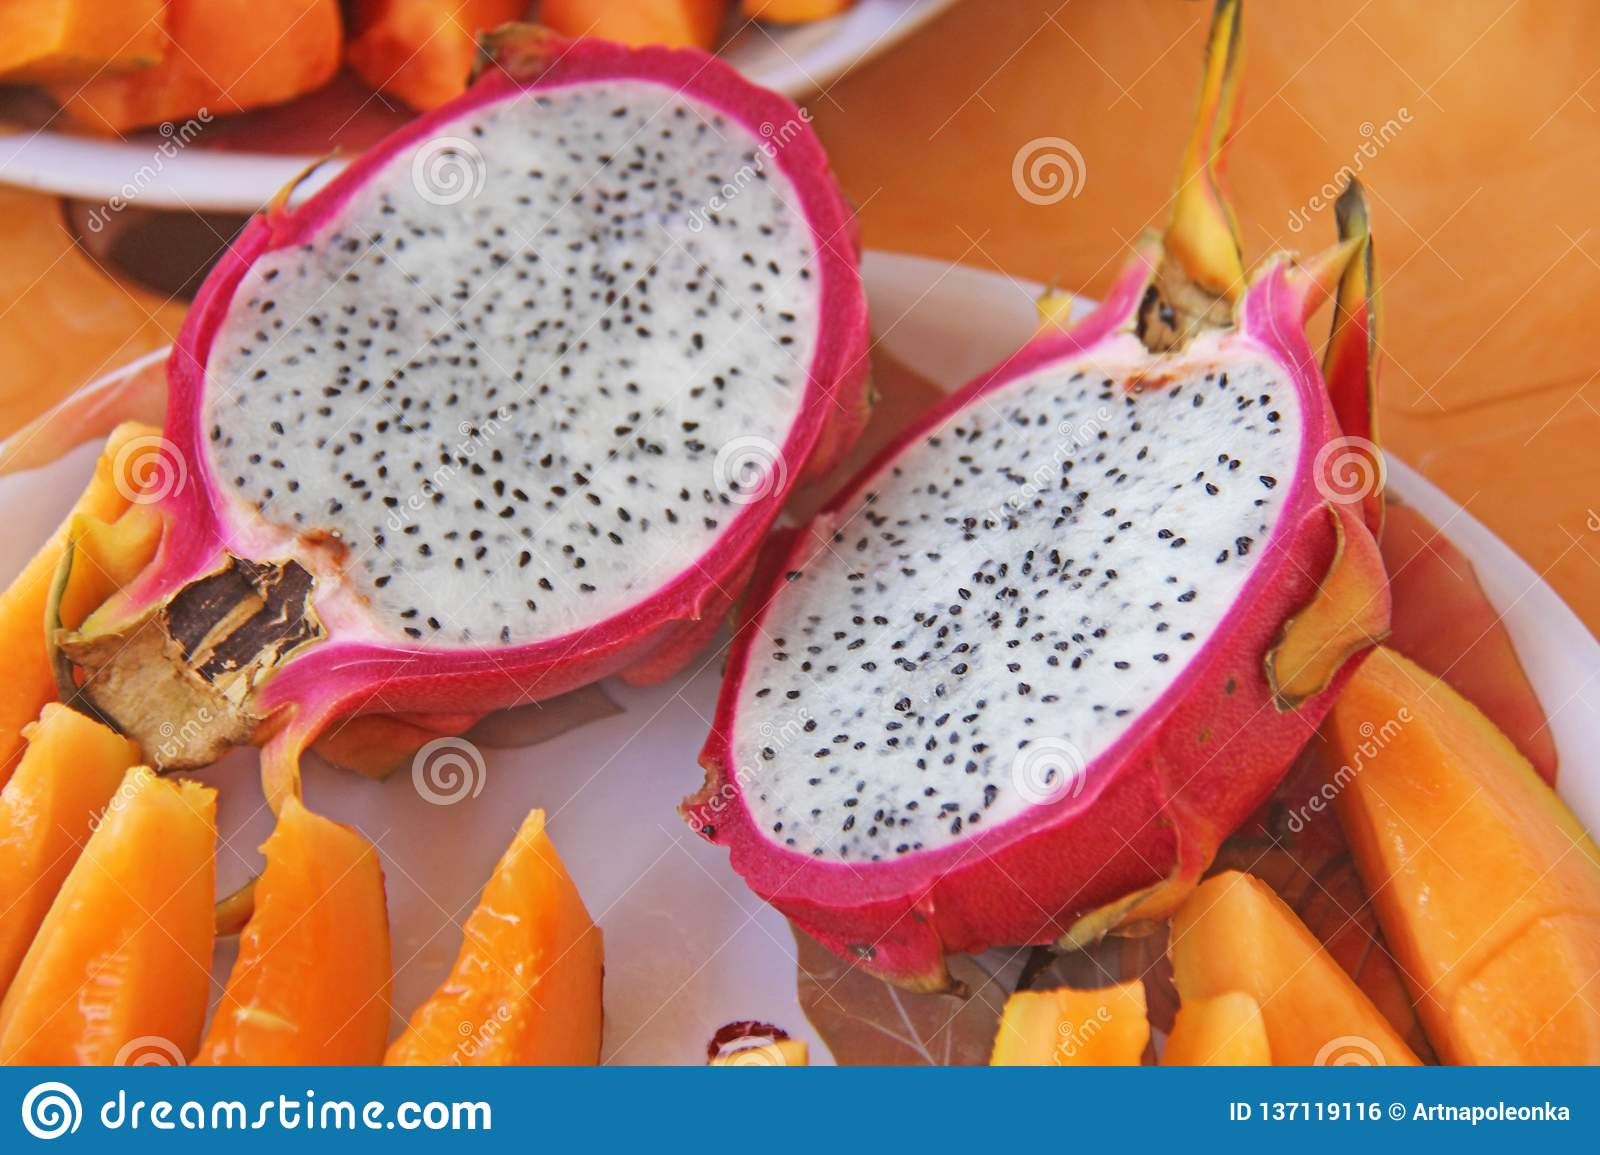 The exotic fruit of the dragon`s eyes. Pink dragon eye and white flesh